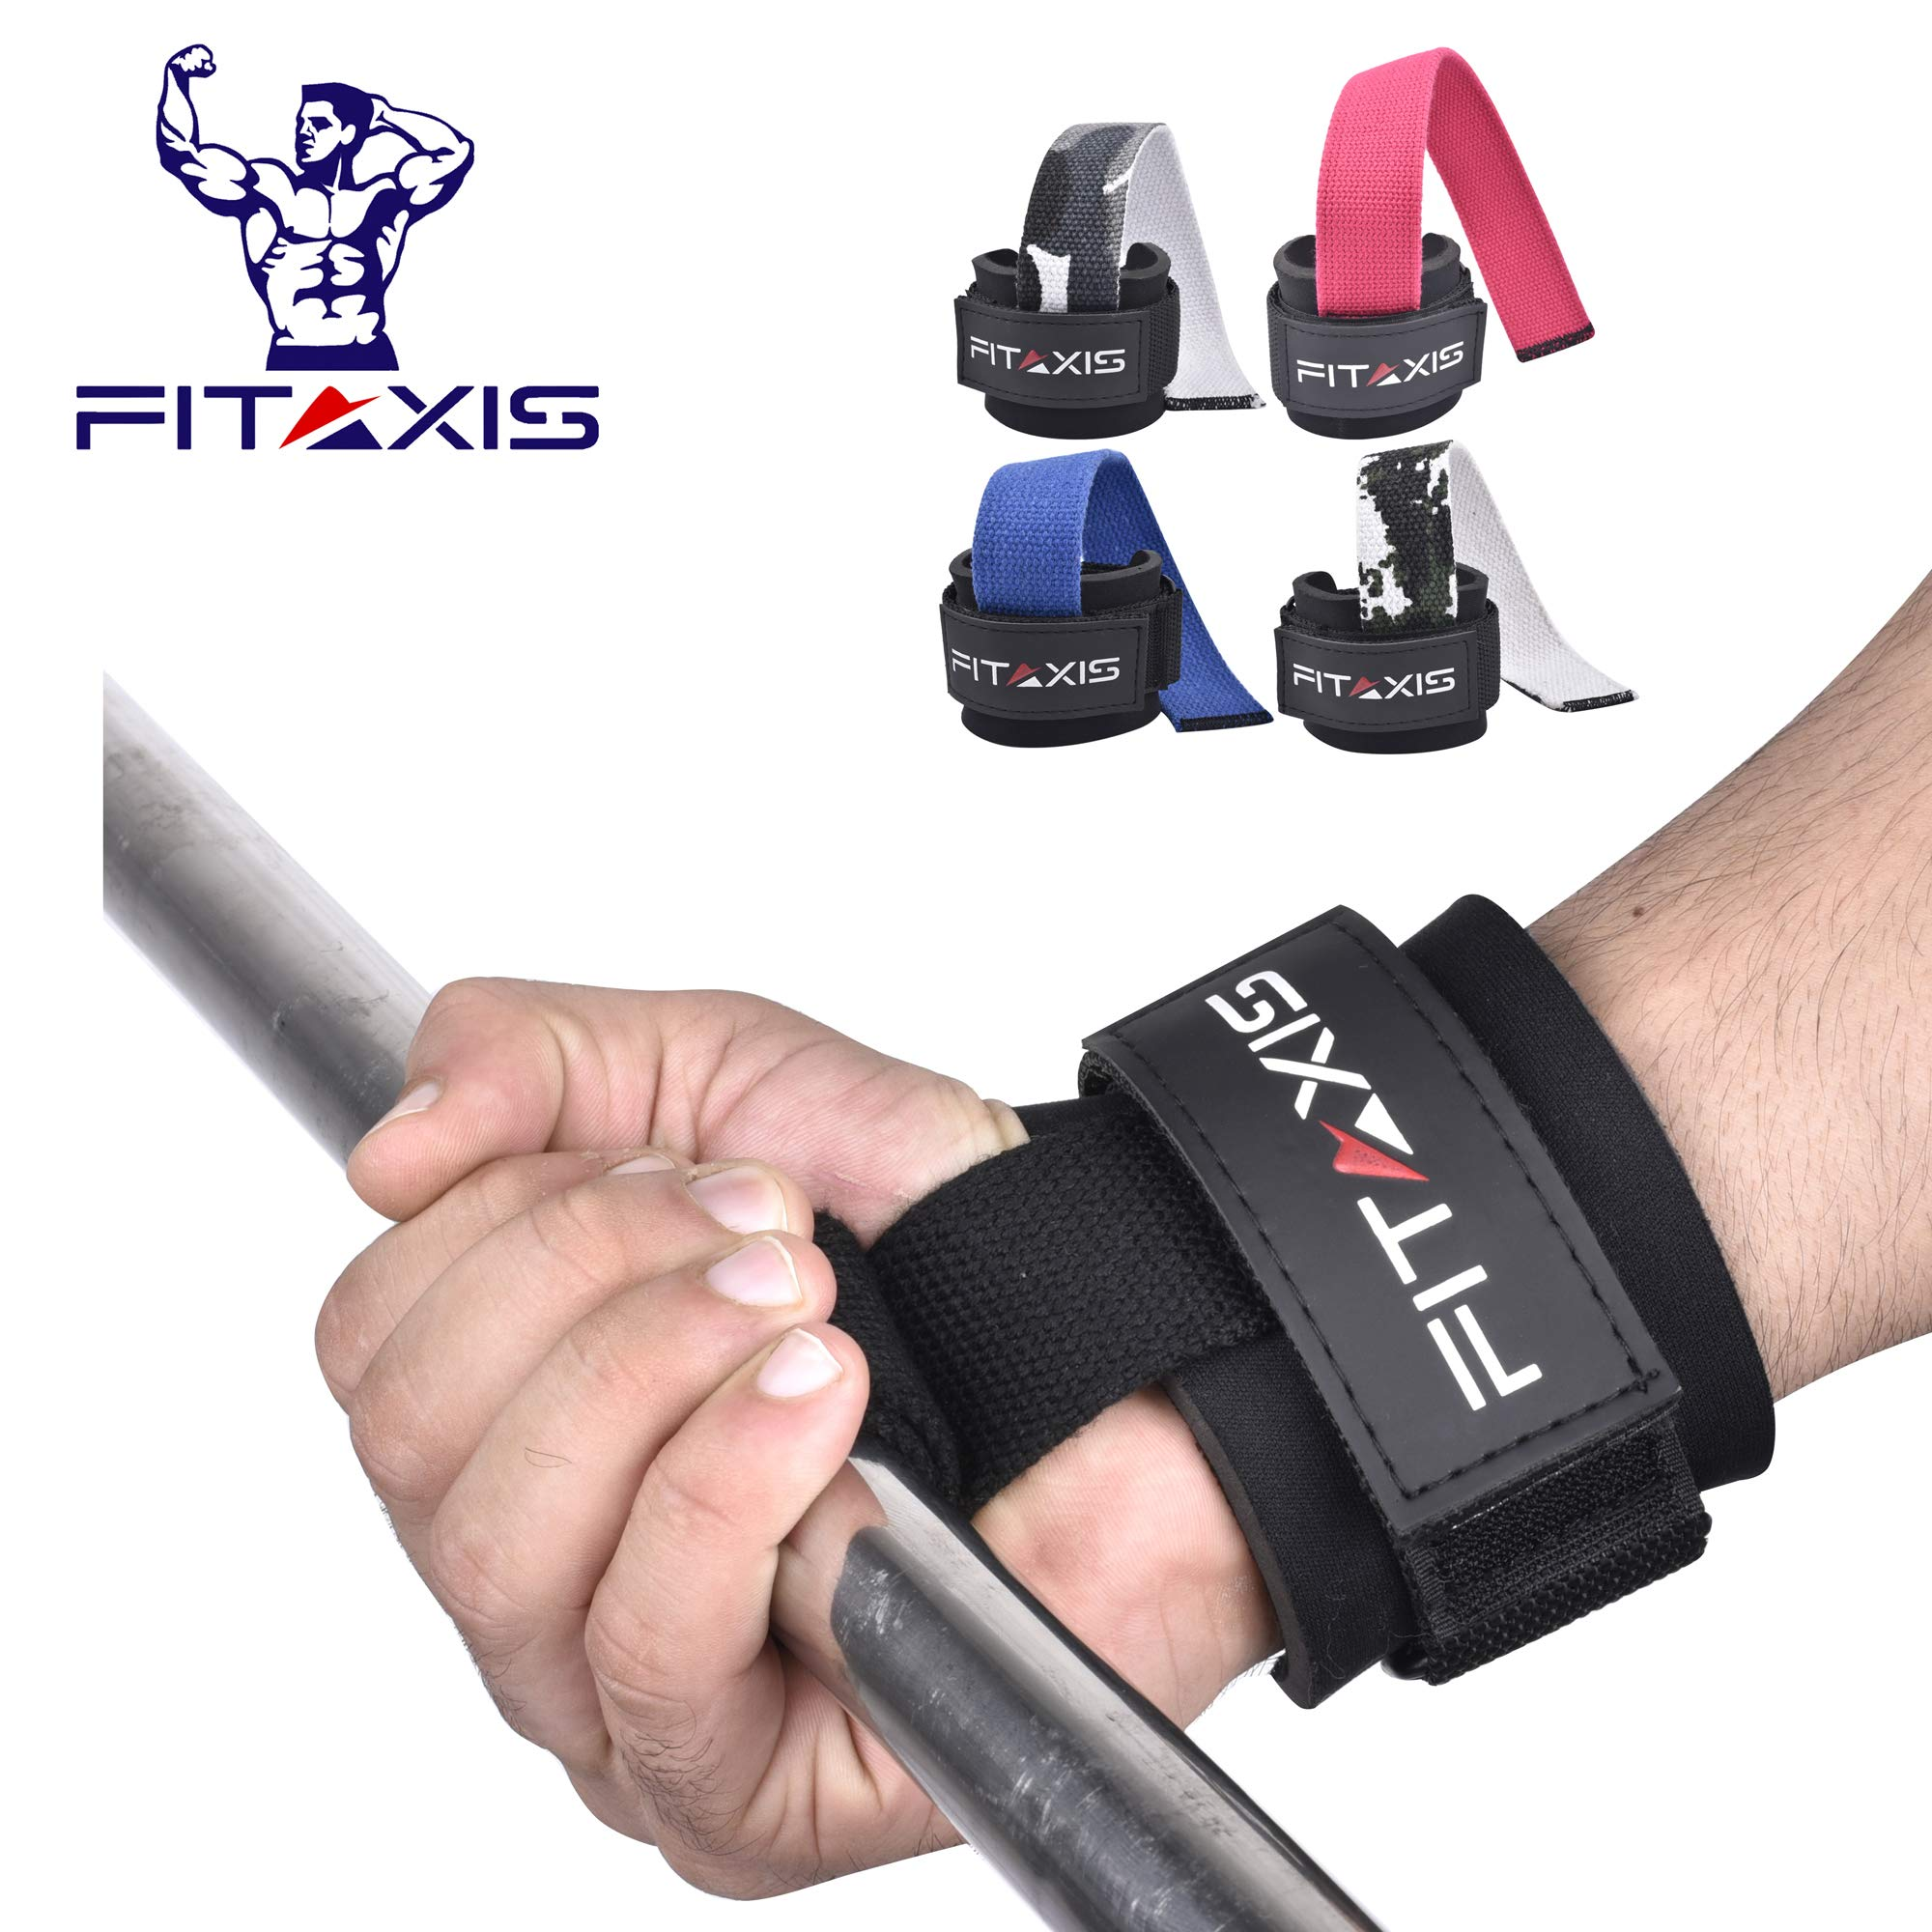 "FITAXIS Weight Lifting Straps 12"" Non-Slip Gel Grip, Wrist & forearms for Heavy Deadlift,Rows,Shrugs, Dumbbell, Squats,Pull-Up's (Black, 12"